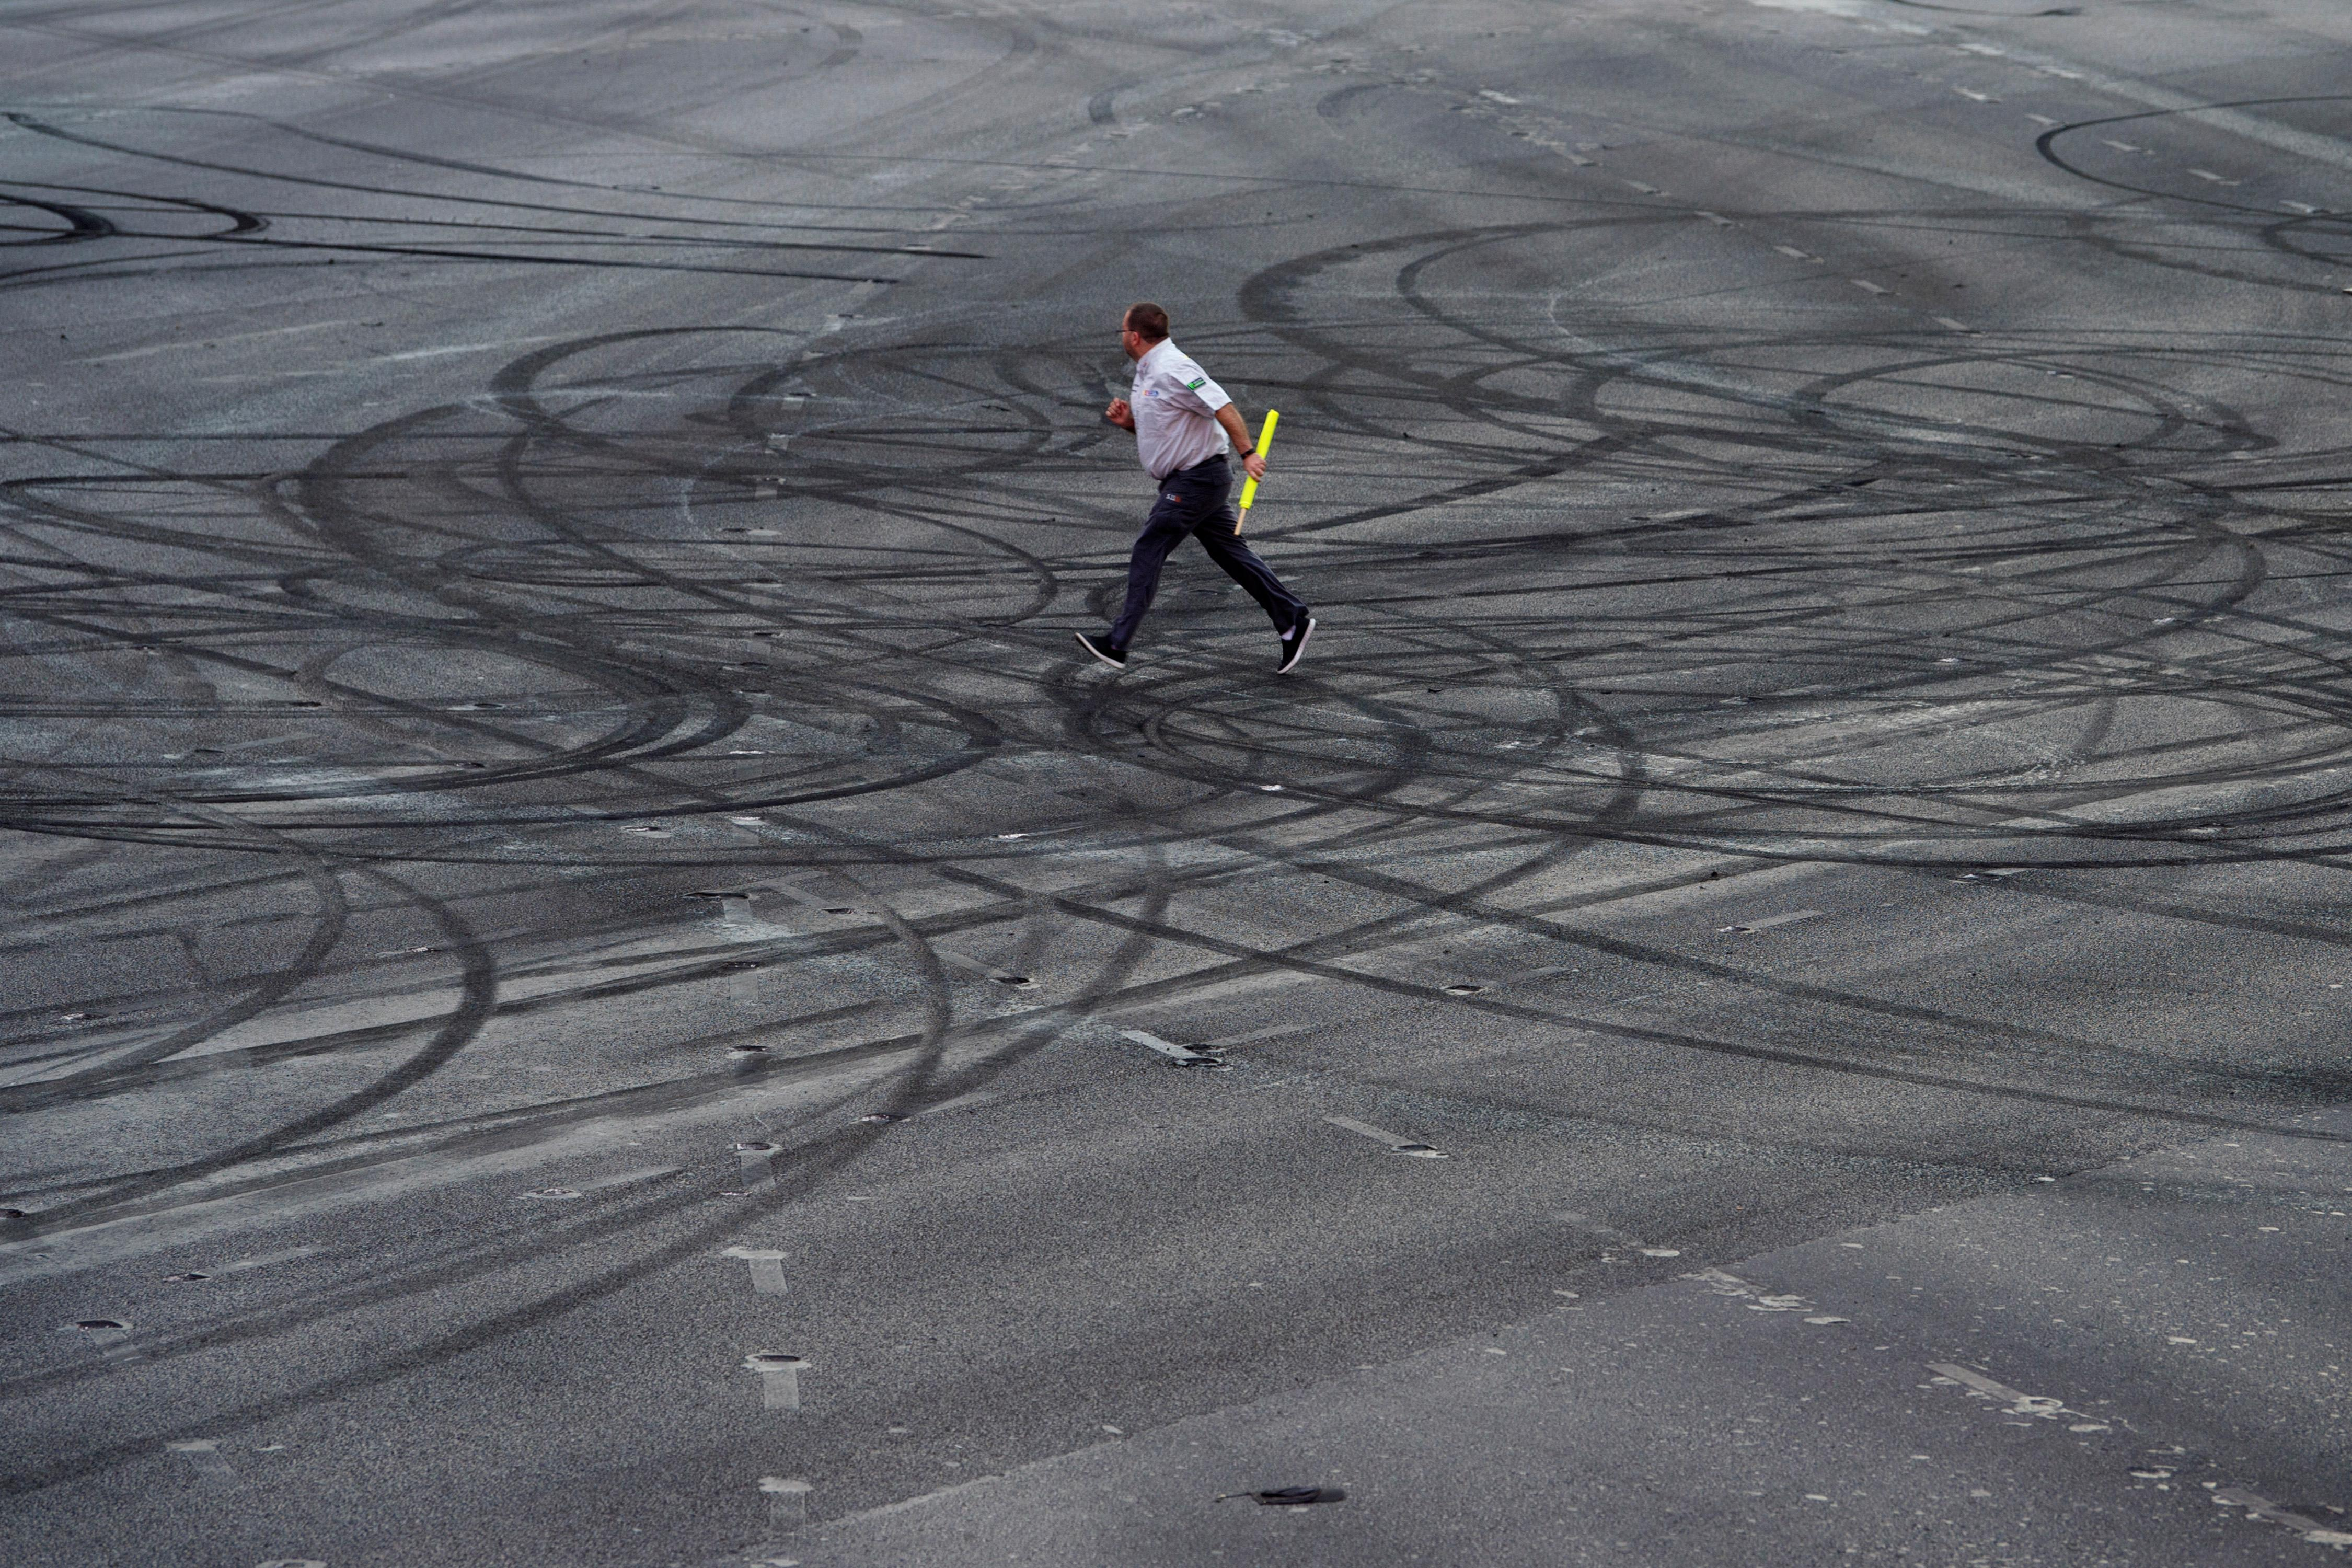 A NASCAR official runs across skid marks during the NASCAR Victory Lap on the Las Vegas Strip being held as part of Champions Week Wednesday, November 29, 2017. CREDIT: Sam Morris/Las Vegas News Bureau